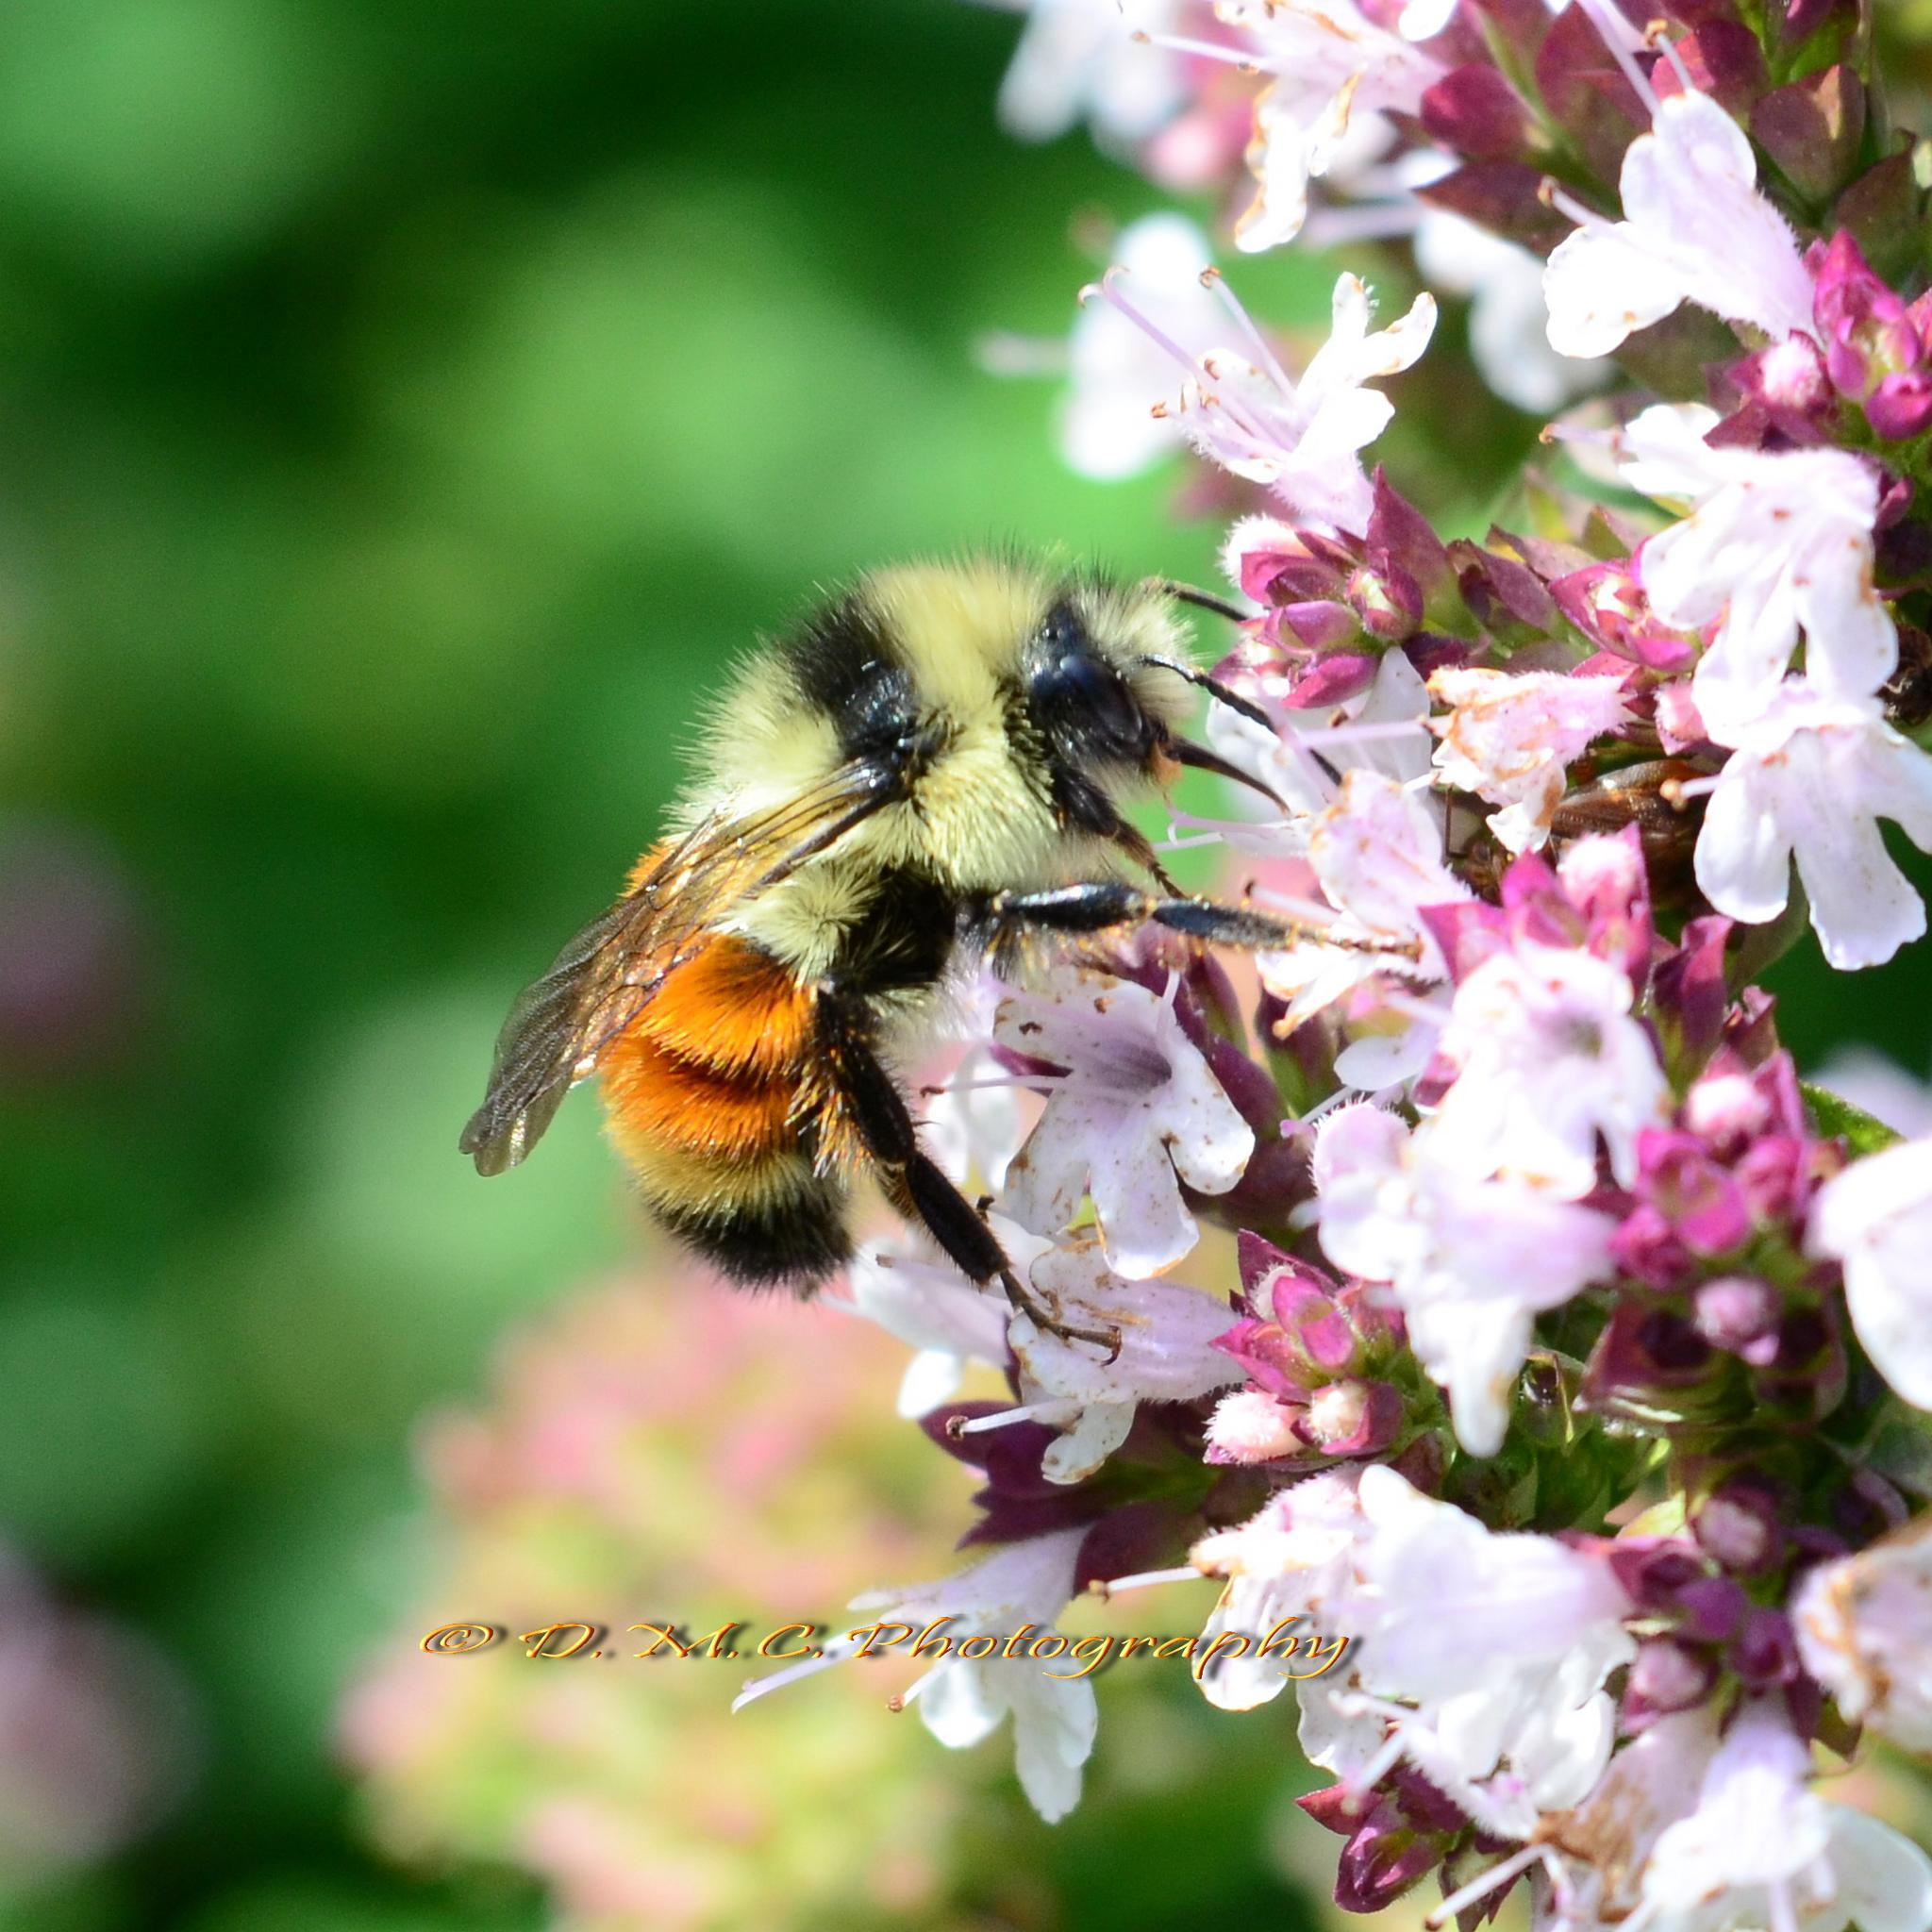 Bumble Bee on Oregano Flowers by D M Camps Photography